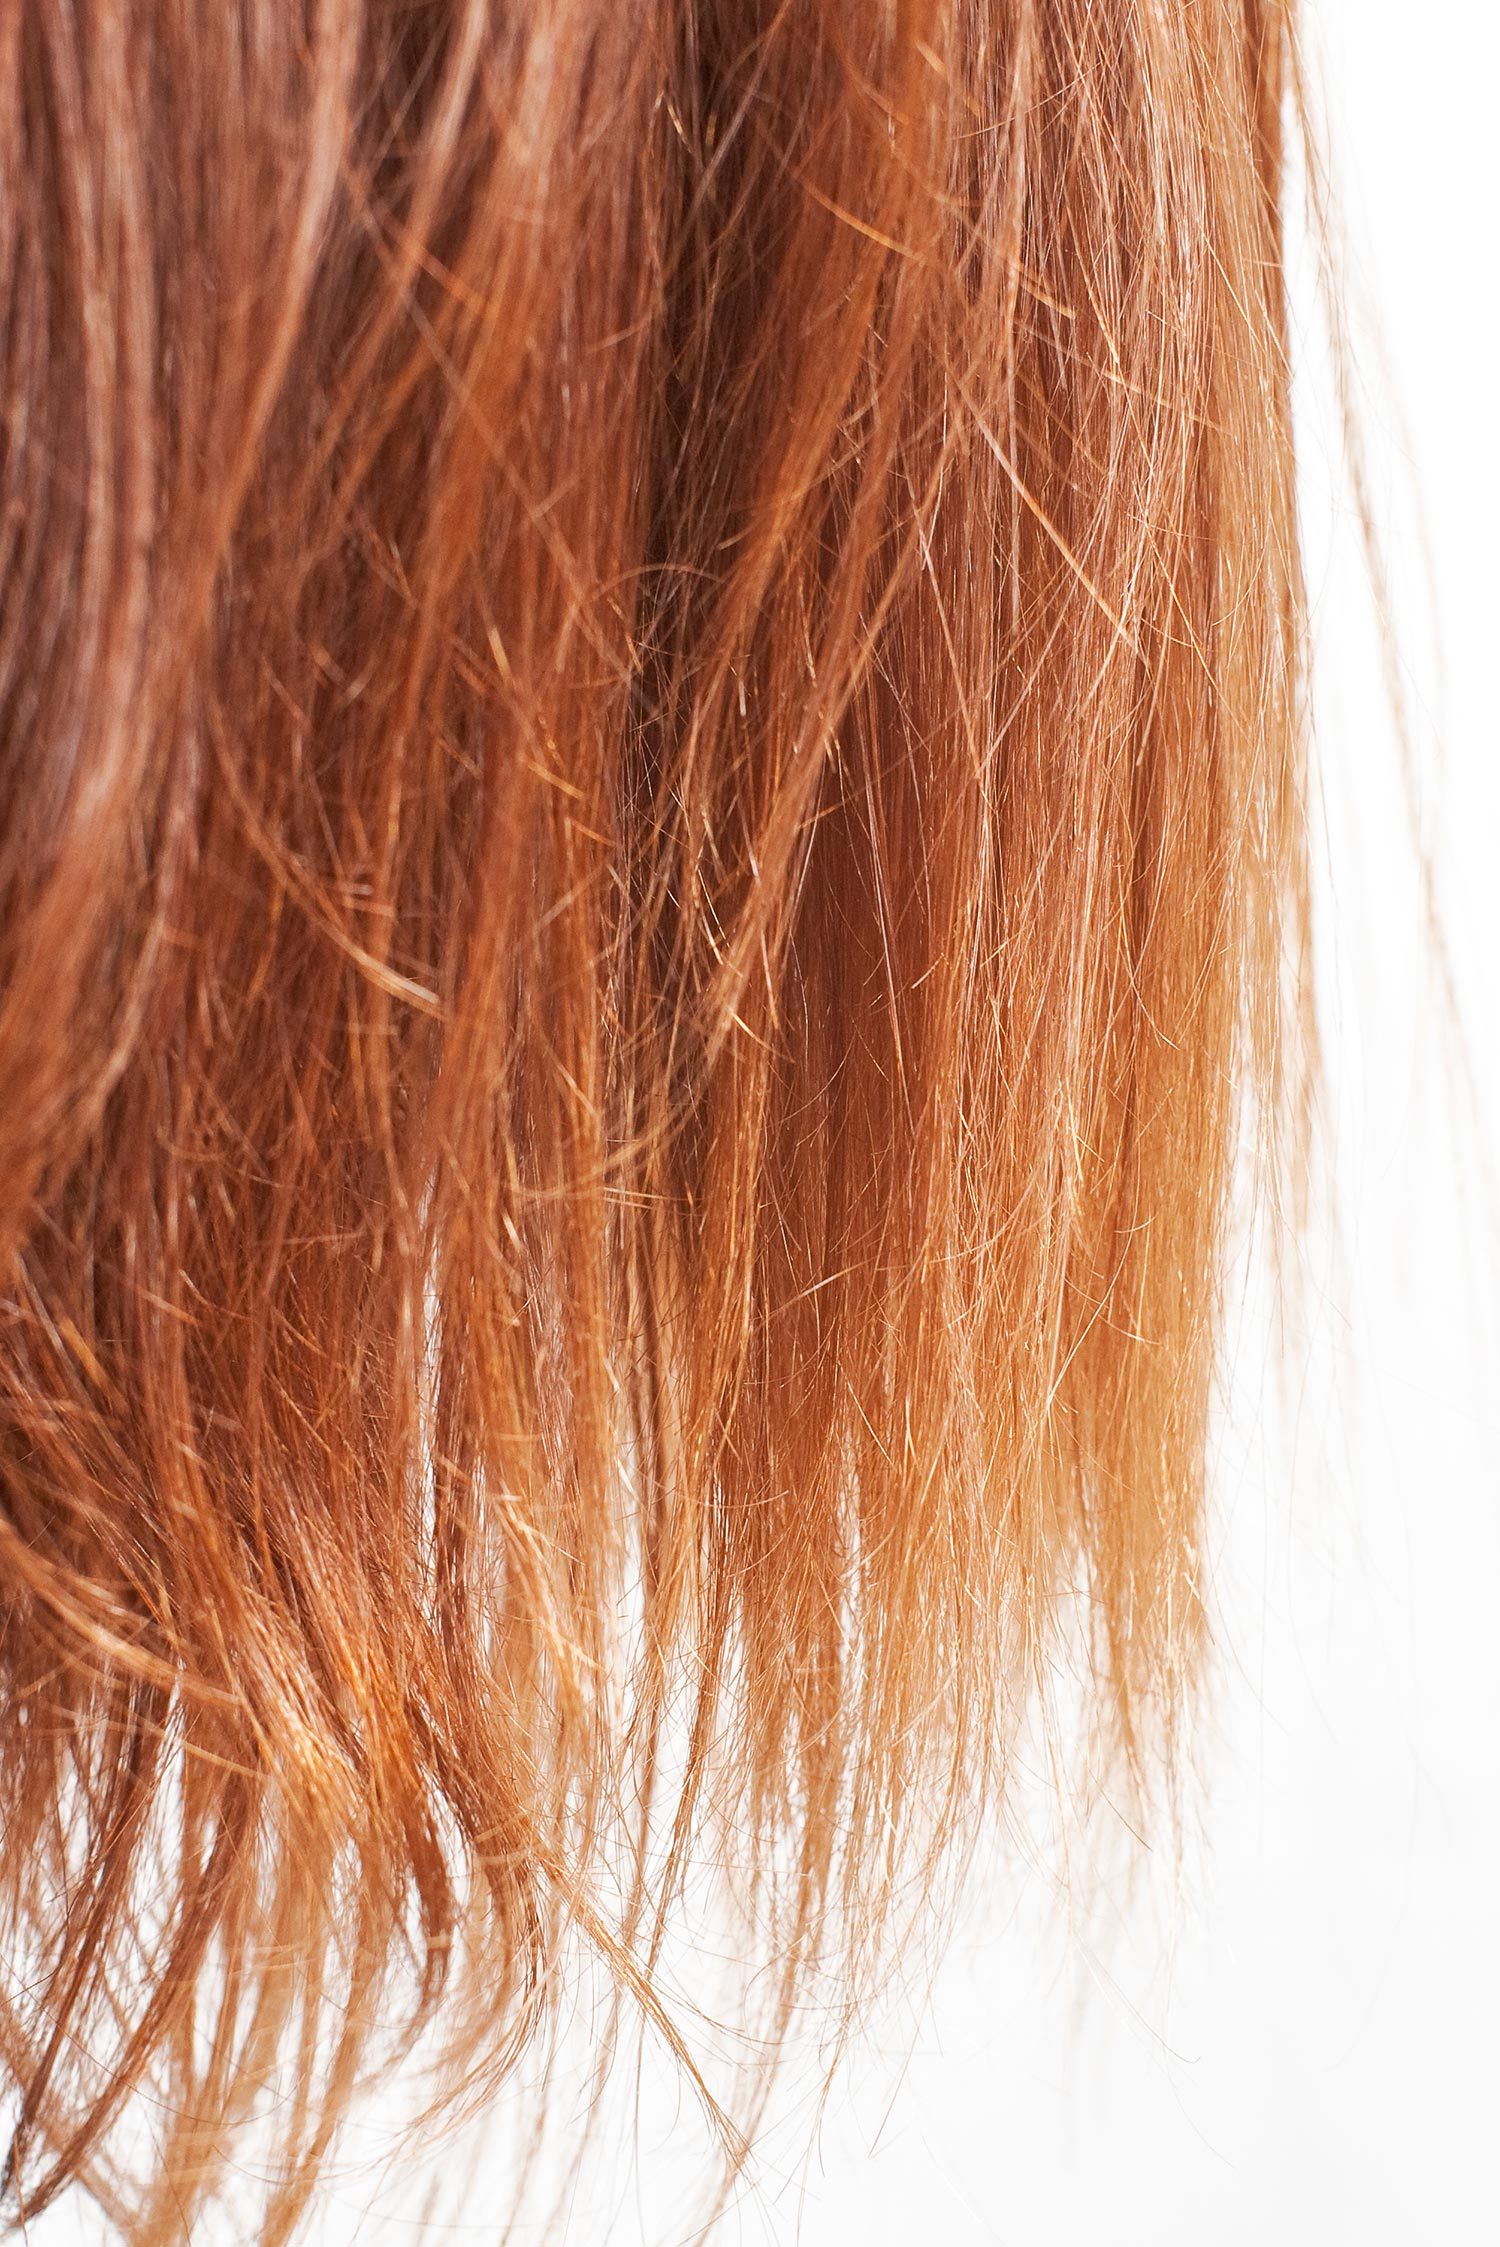 Hair SOS: How to best care for coloured hair - Liz Earle ...